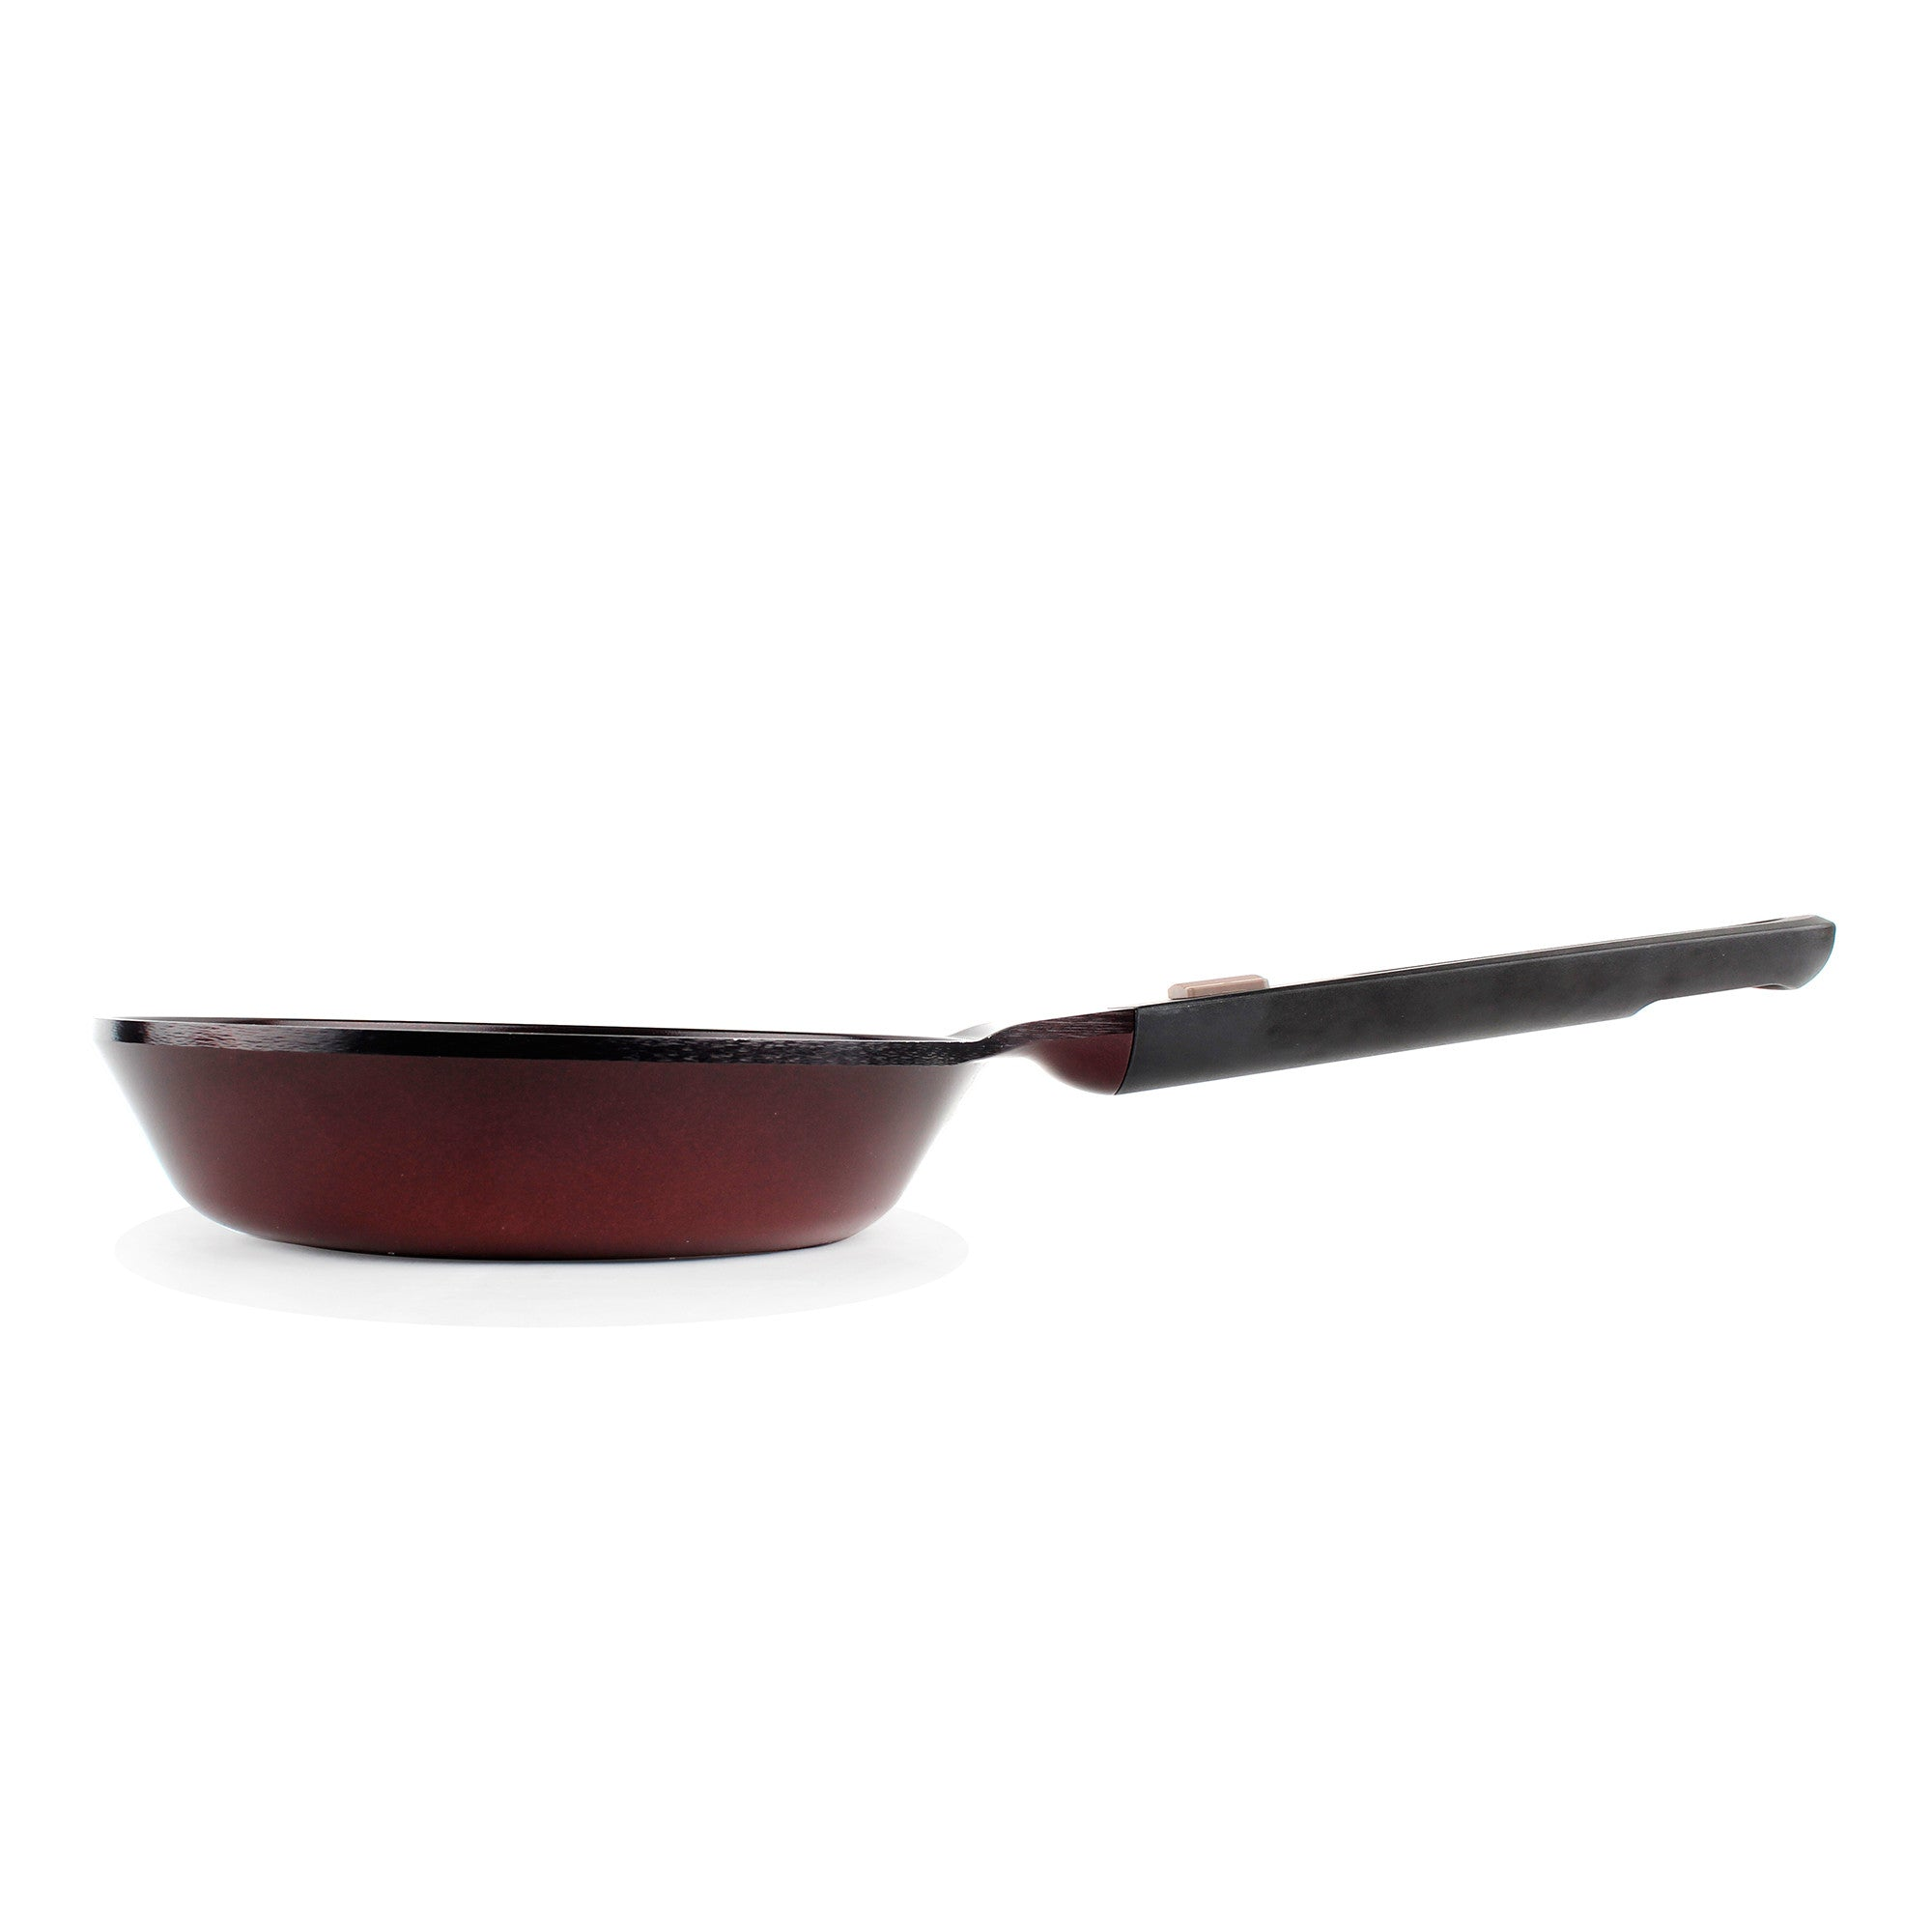 neoflam mypan 95 inch ceramic nonstick frying pan in ruby red detachable handle - Ceramic Frying Pan